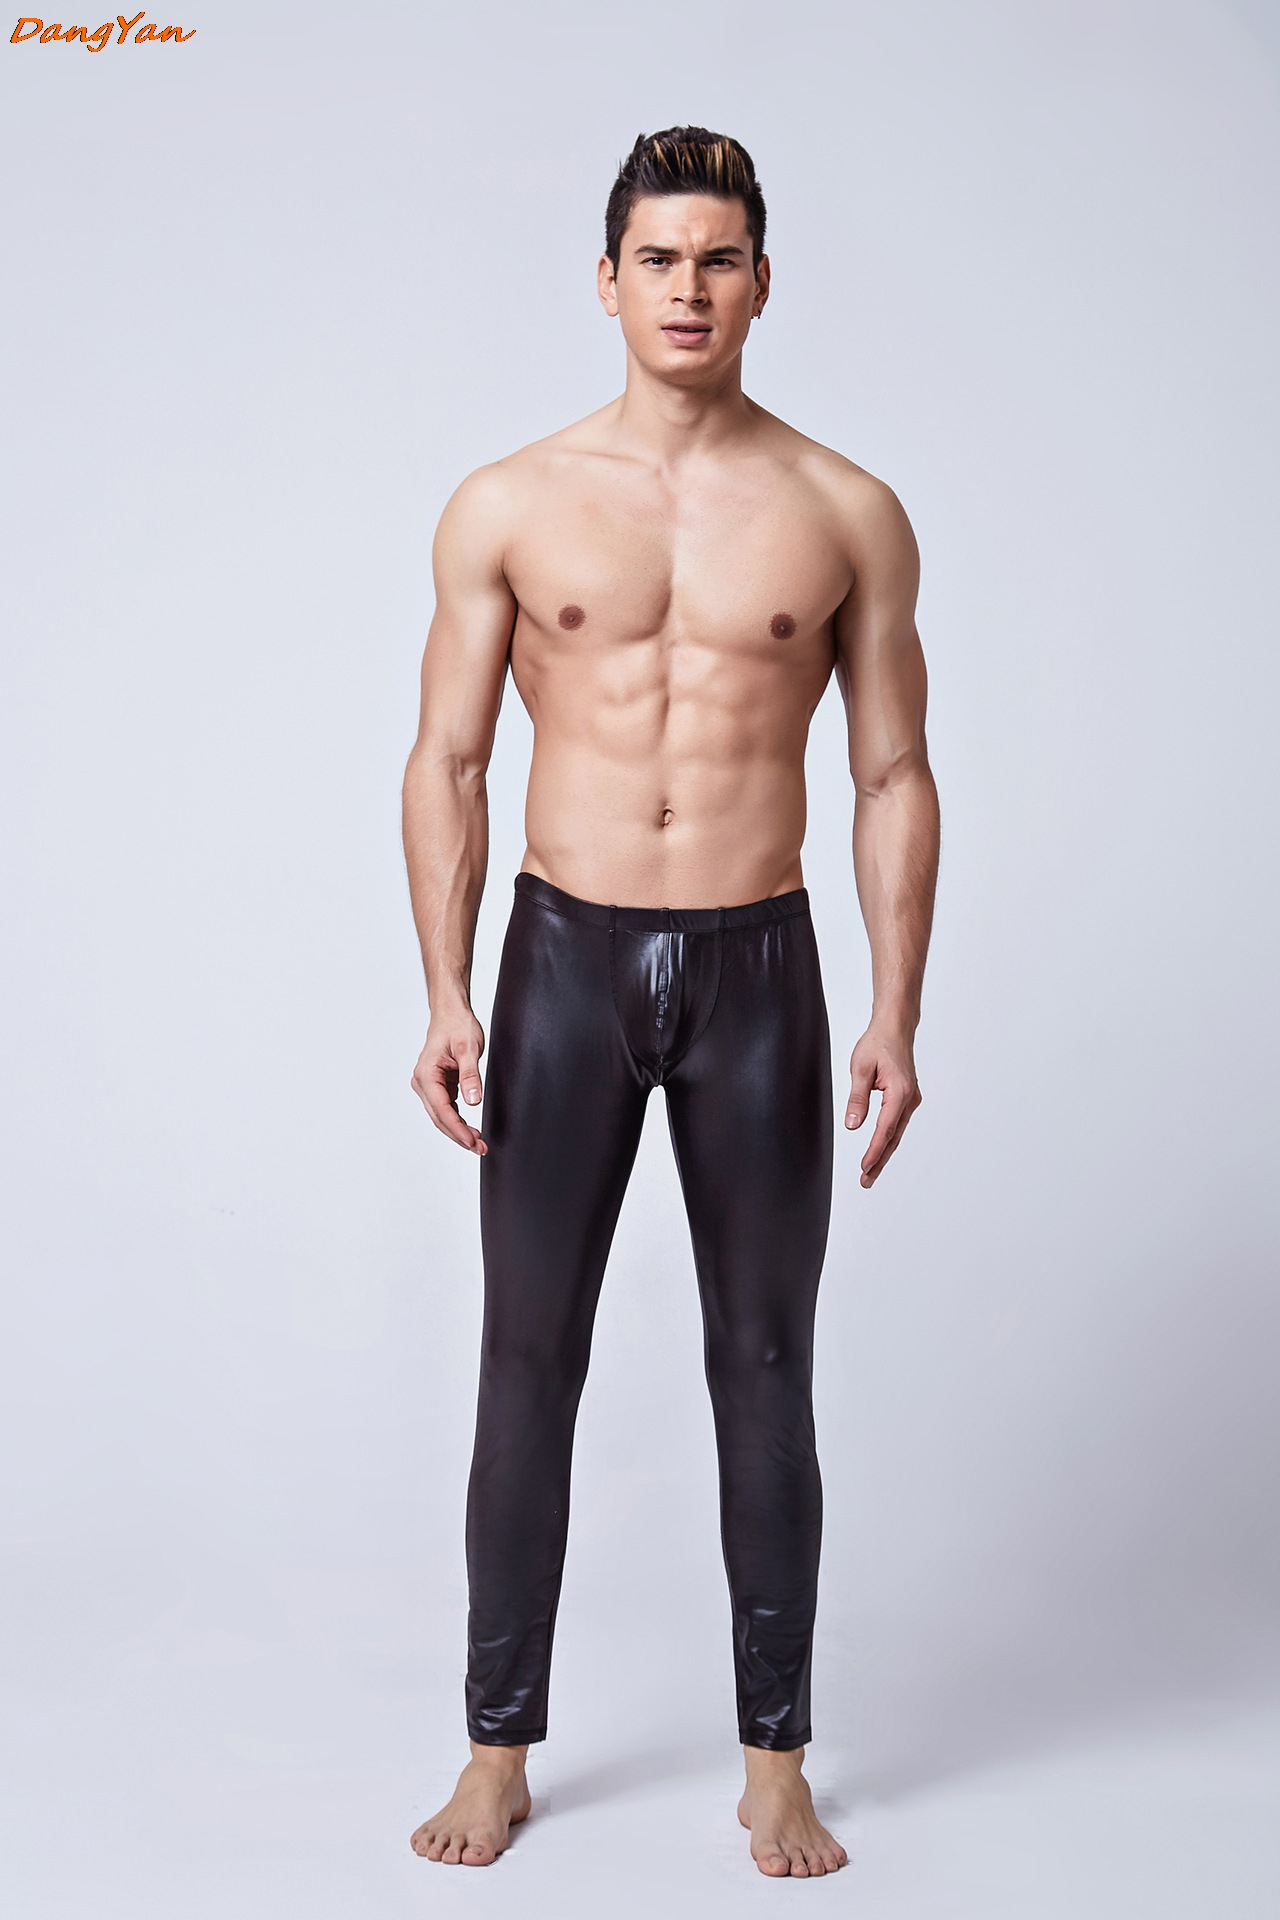 Buy Skinny Pants Patent Leather Leggings Men Latex Look like Sexy Trousers Gay Exotic Lingeries perform costume Stage Apparel